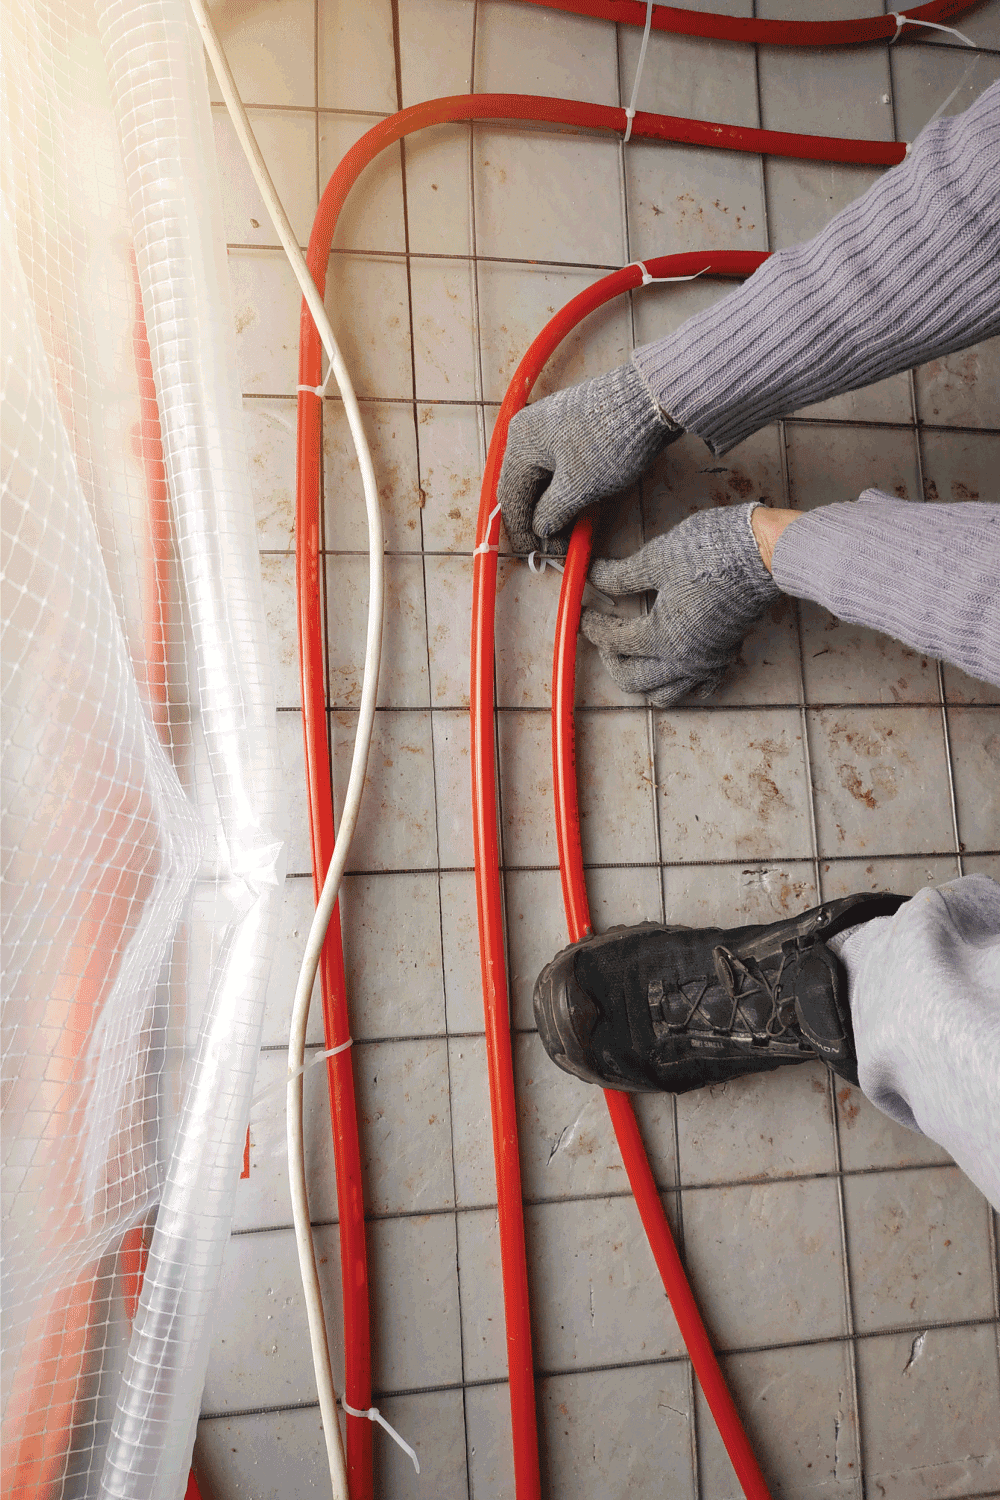 The master laid pipes on the floor for heating and floor heating